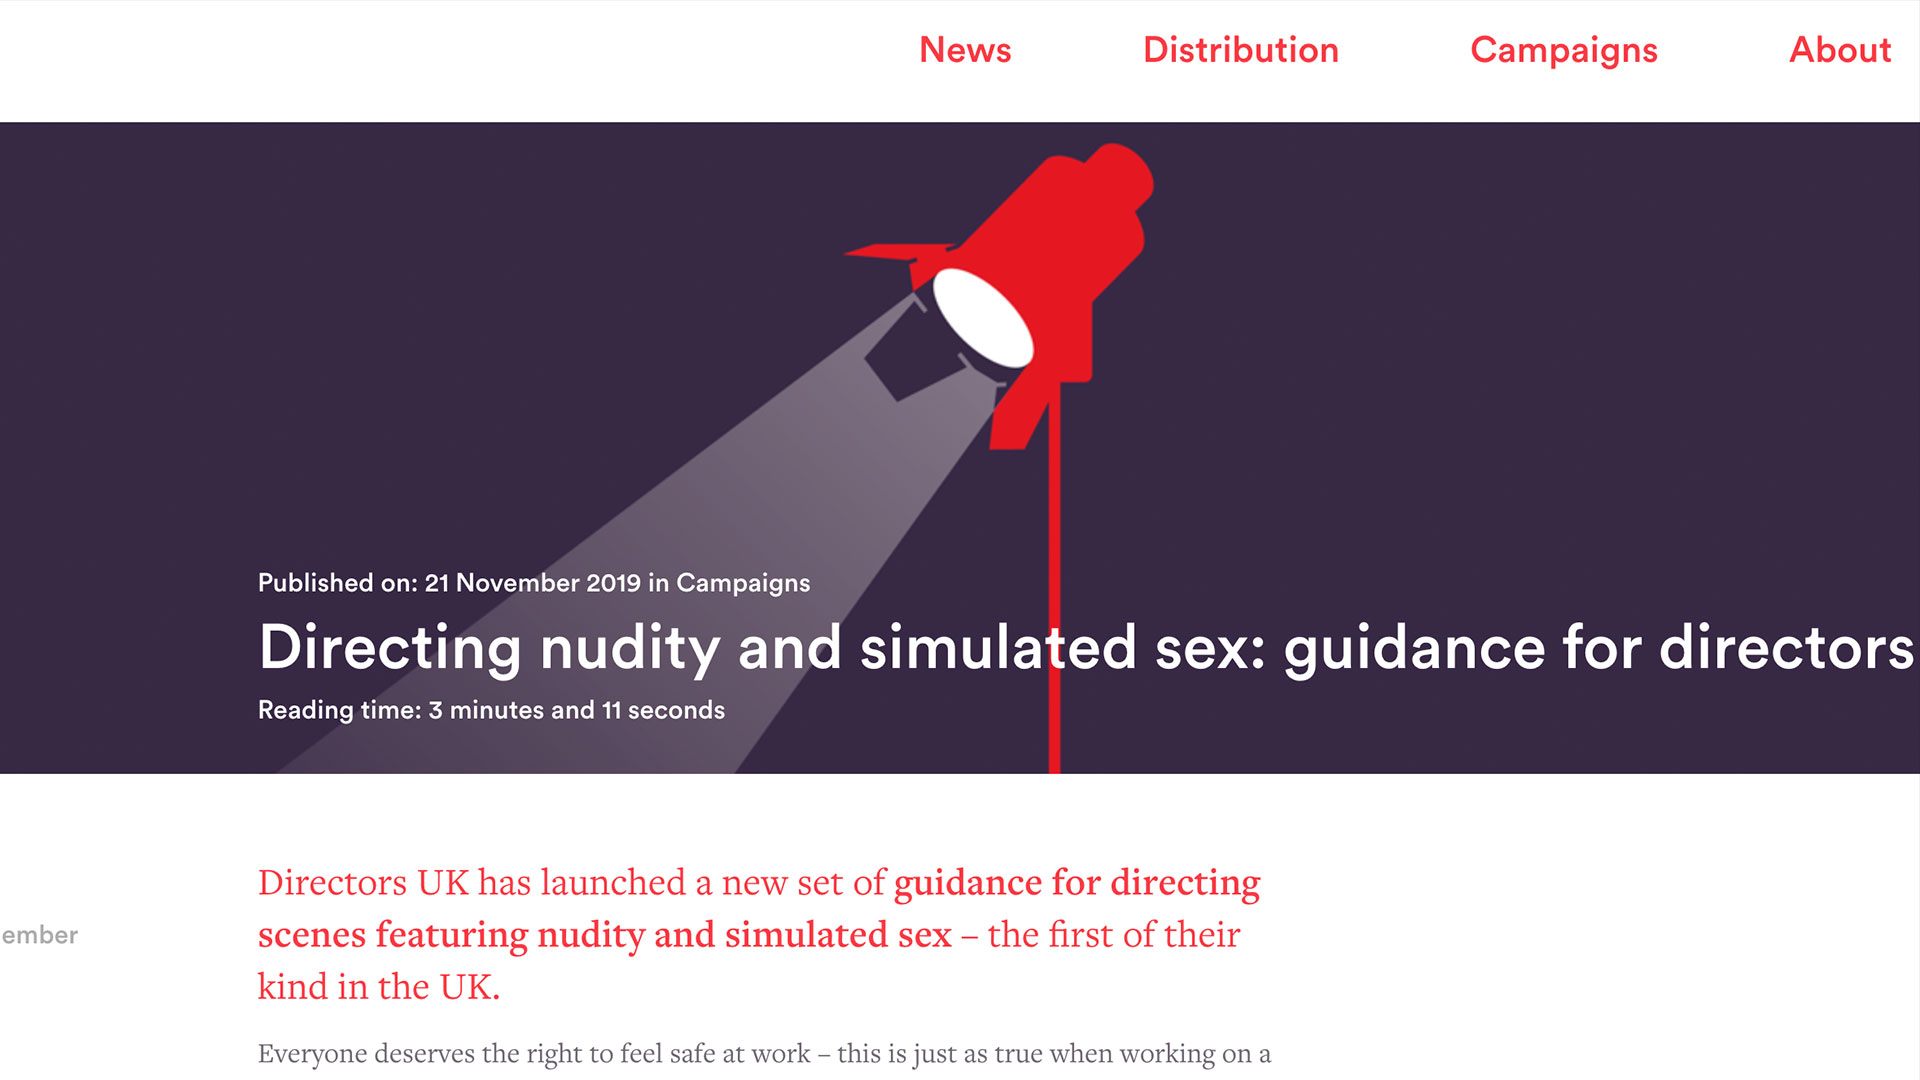 Fairness Rocks News Directing nudity and simulated sex: guidance for directors